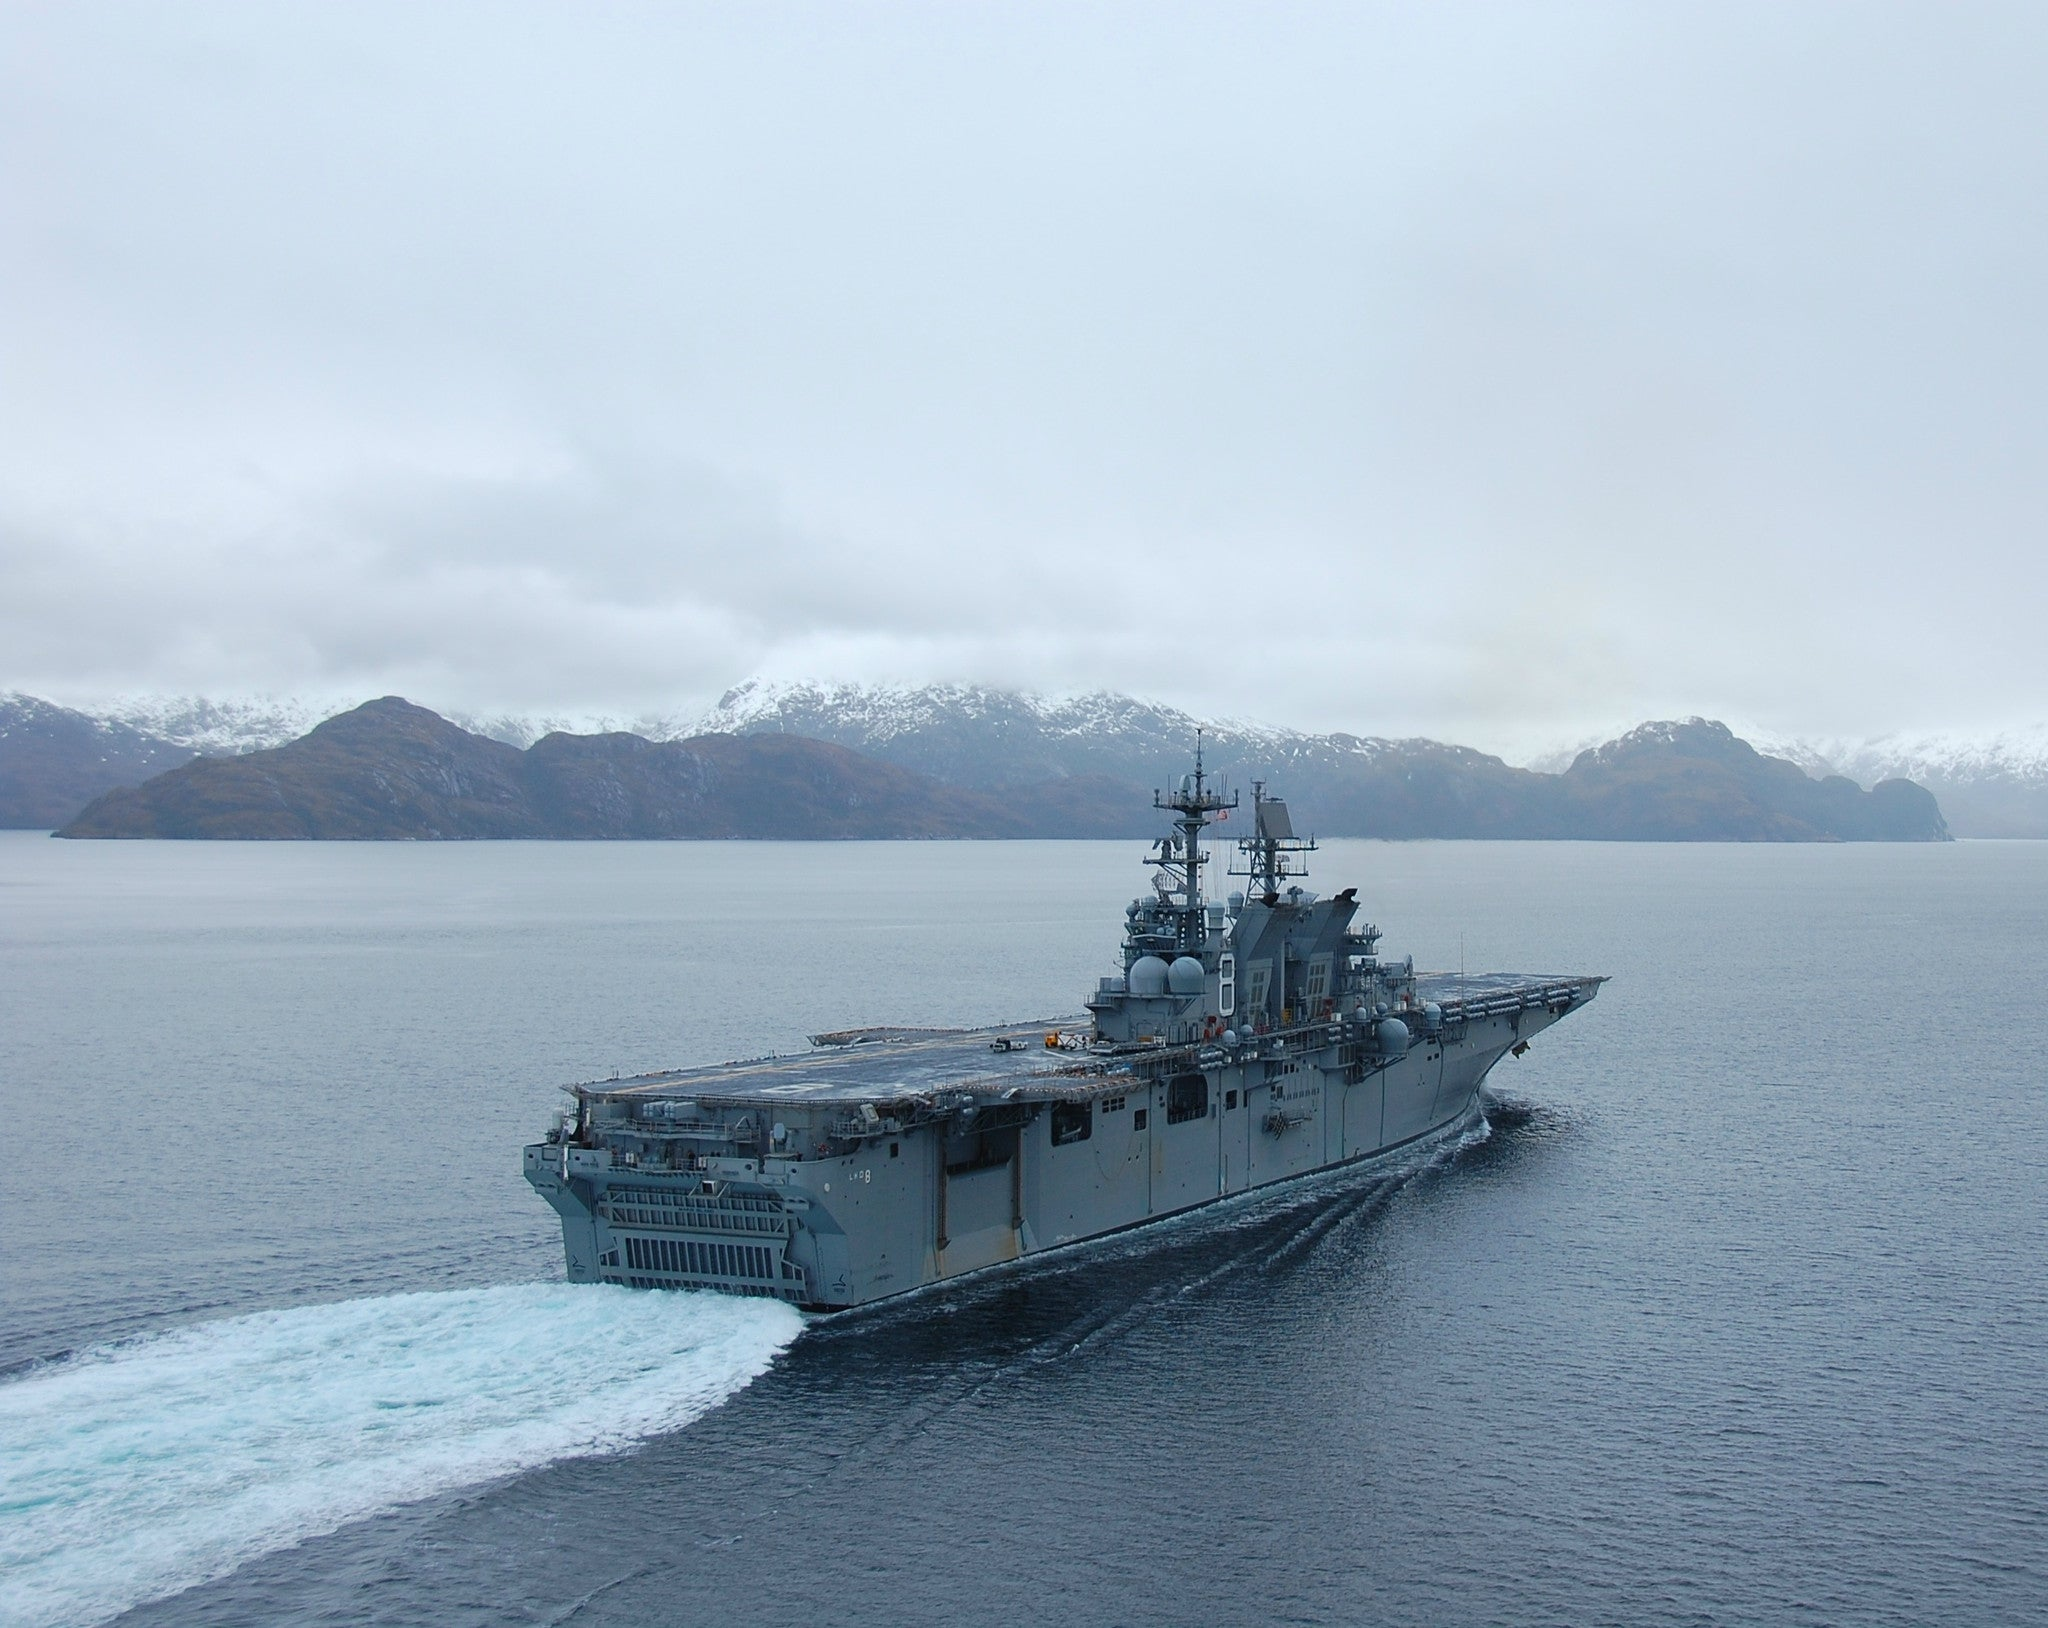 "Pre-Commissioning Unit Makin Island LHD-8 Strait of Magellan August 15, 2009 - 8 x 10"" Photograph"